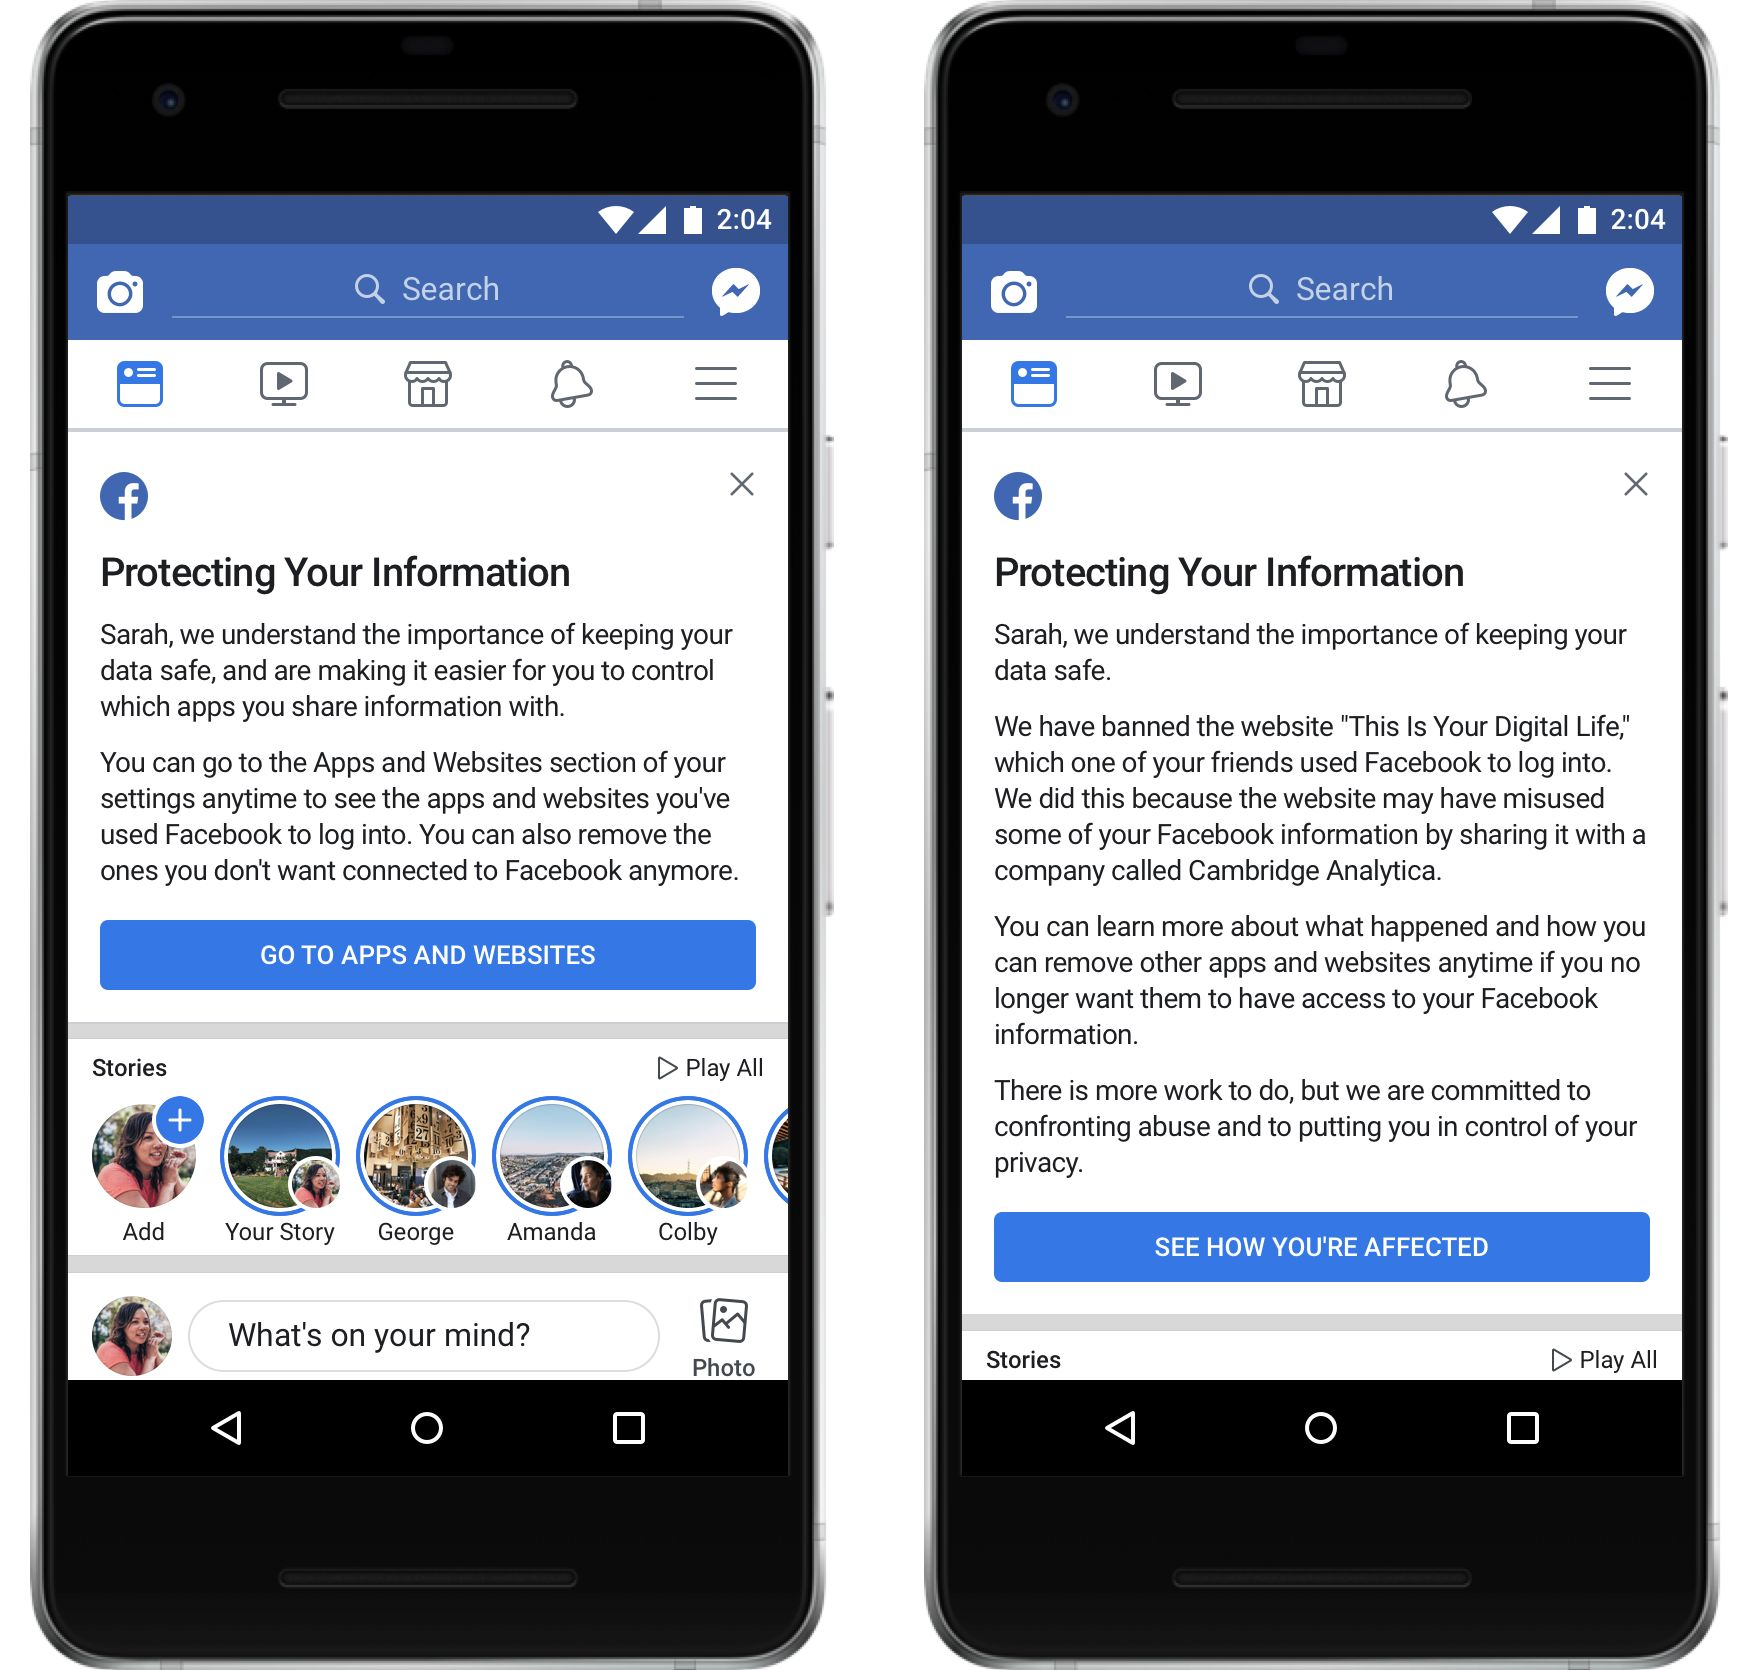 Facebook Starts Notifying Millions Of Users Affected By Data Scandal - Here's What To Do